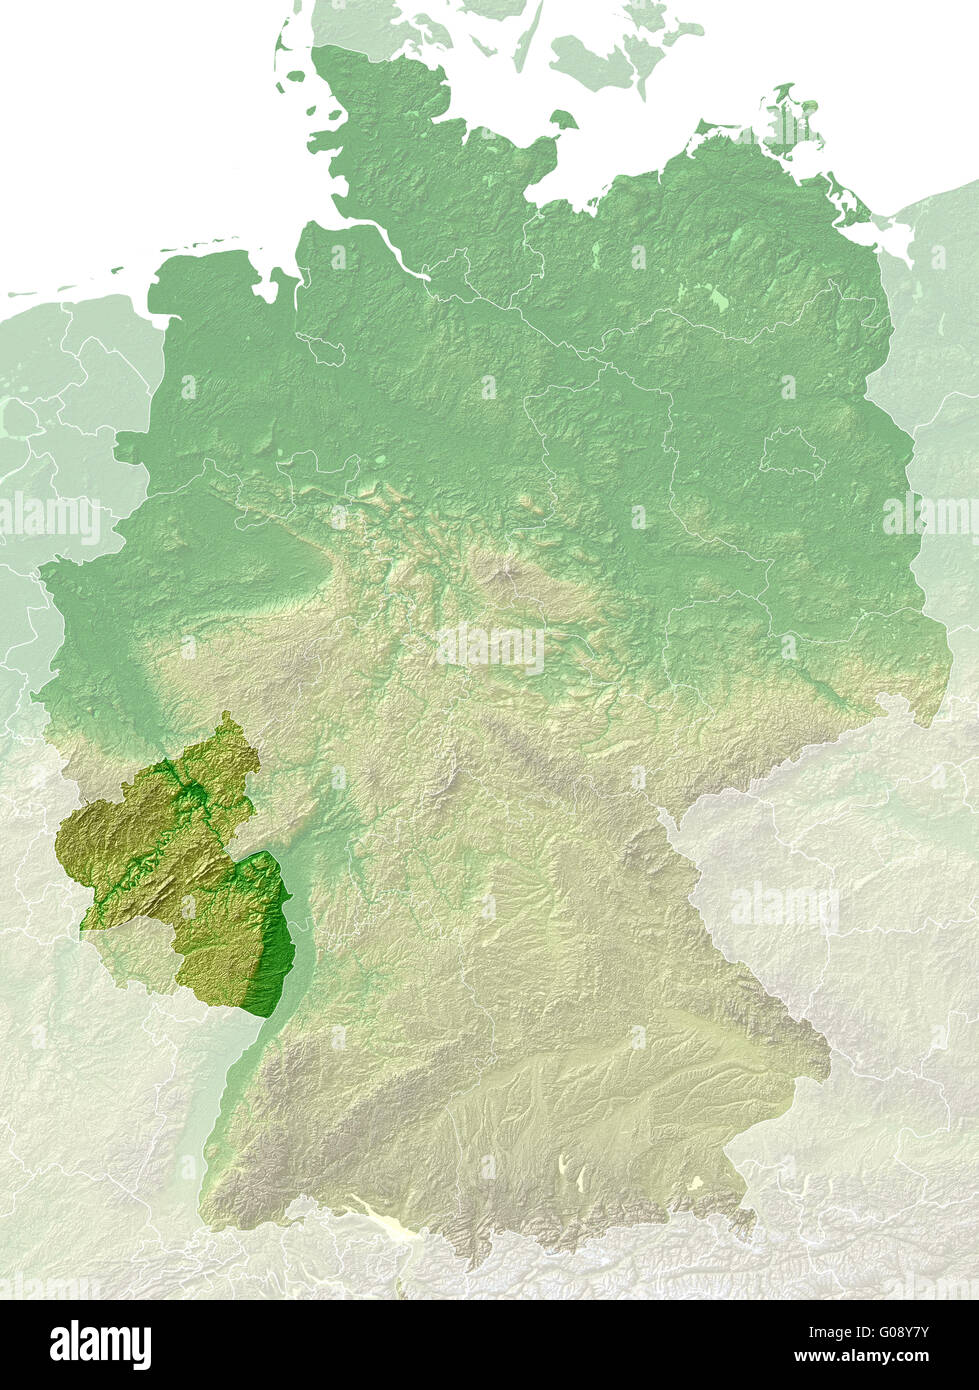 Rhineland-Palatinate - topographical relief map - Stock Image